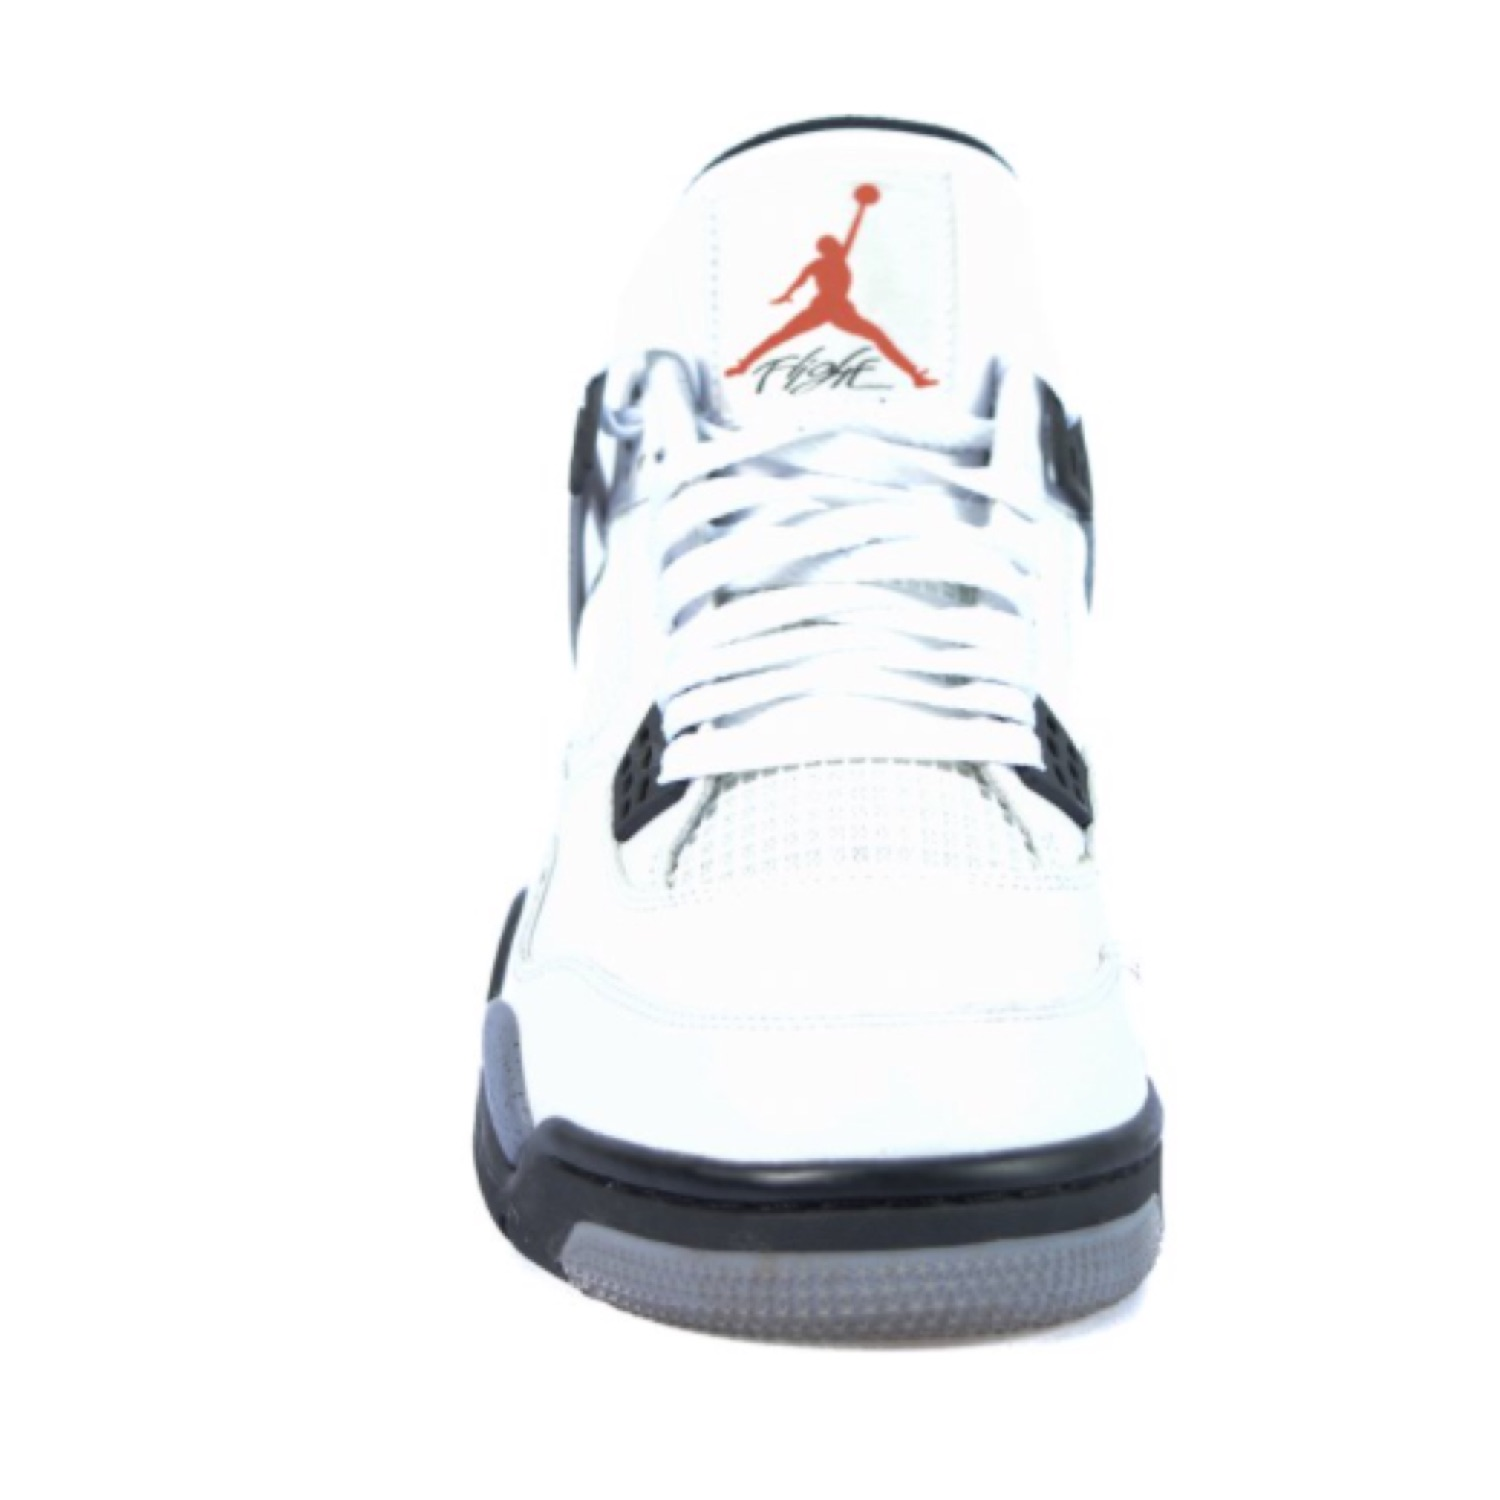 "b0f9cff149b7 Nike Air Jordan 4 Retro ""White Cement 2012"""